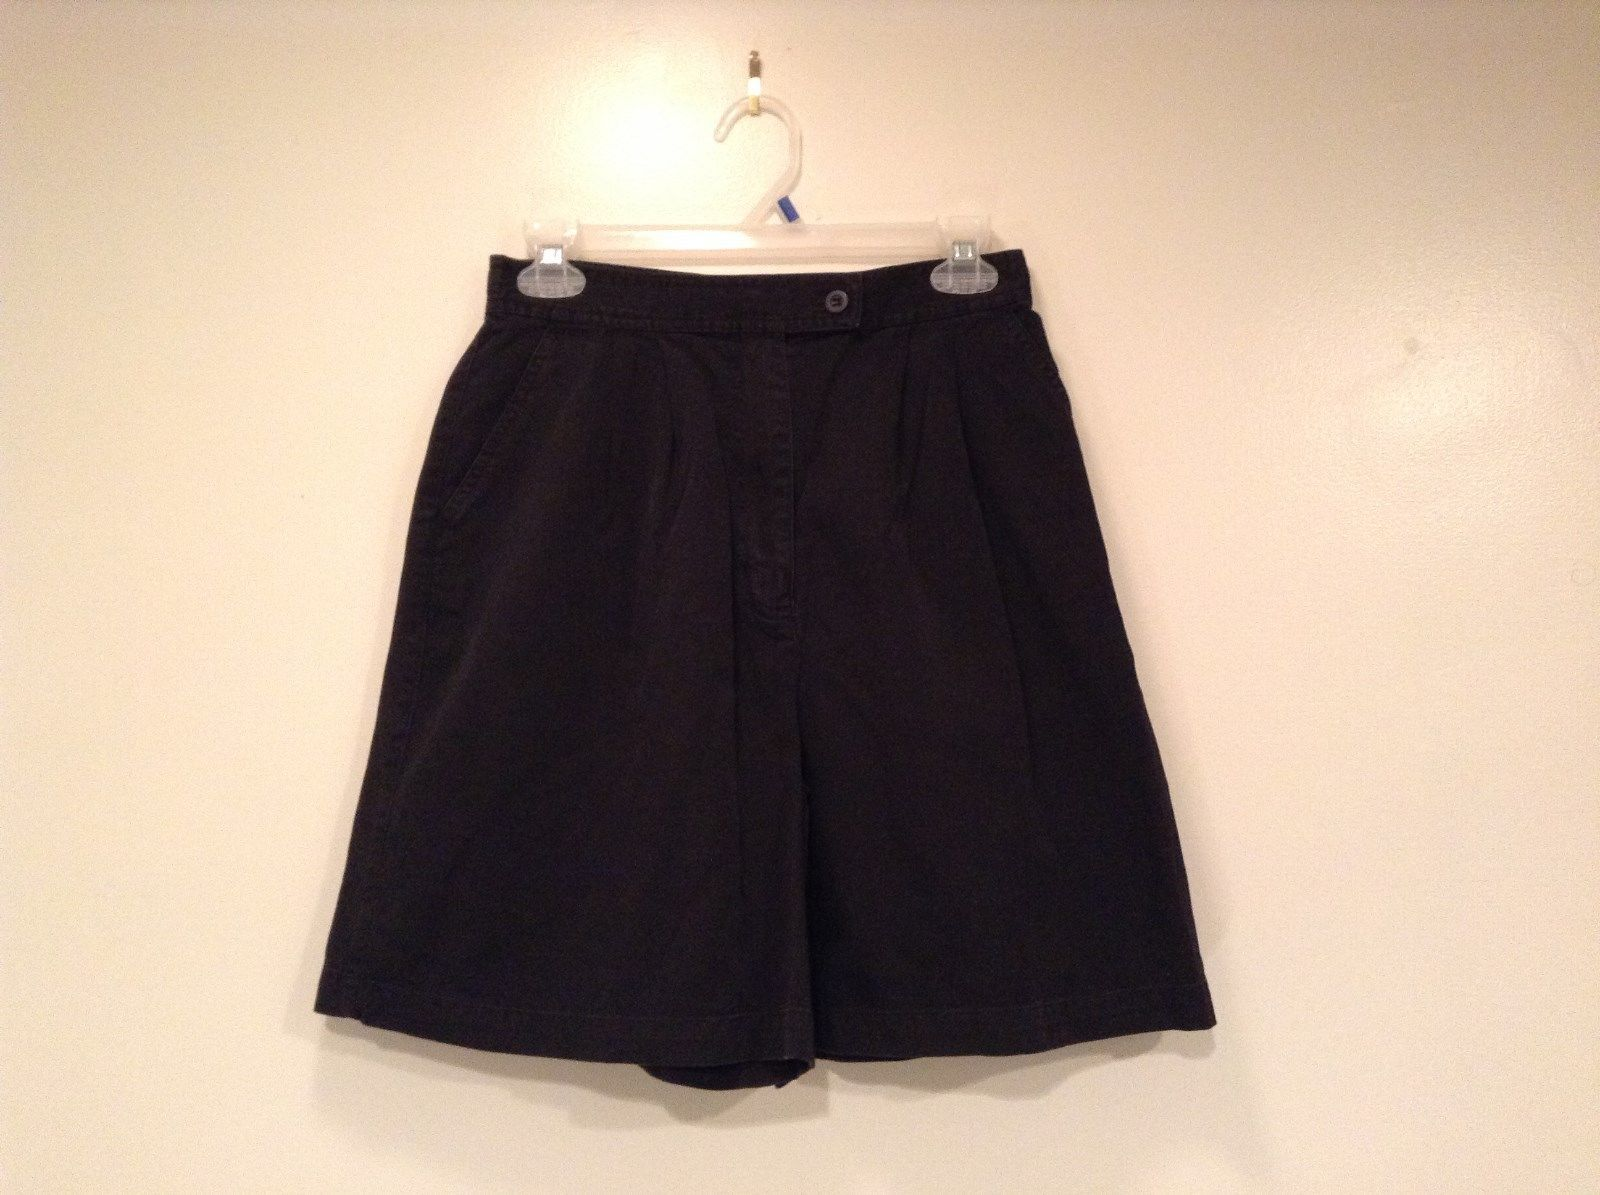 Black IZOD 100 Percent Cotton Casual Shorts Size 10 Partial Elastic Waistband